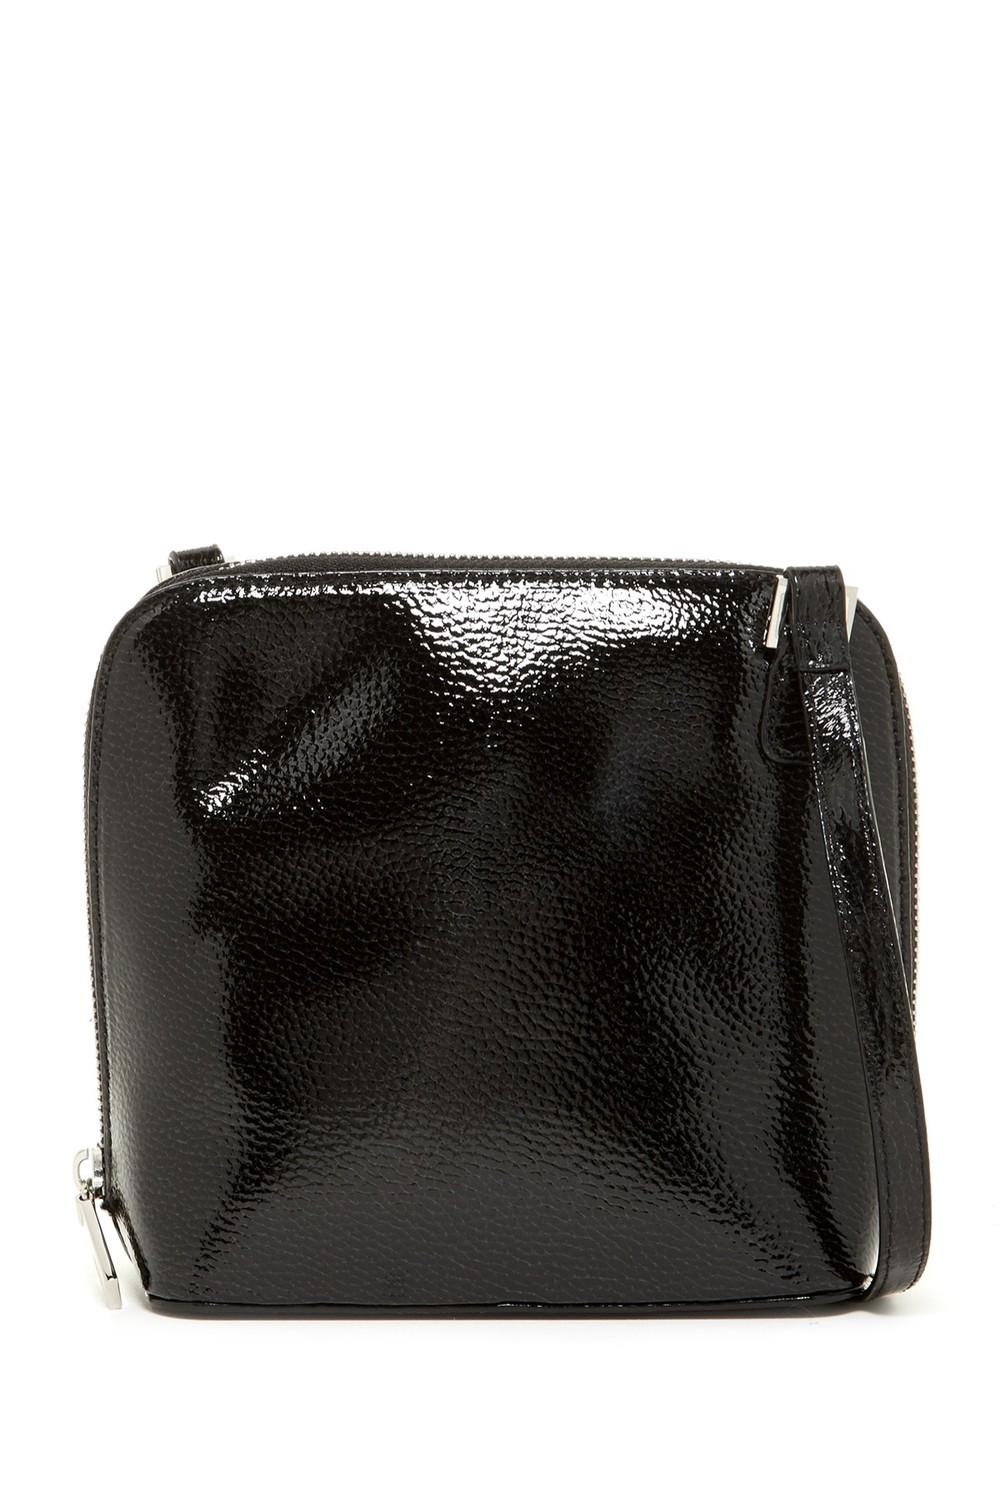 Hobo Camilla Leather Crossbody. Nordstrom Rack. Was: $128 Now: $59.